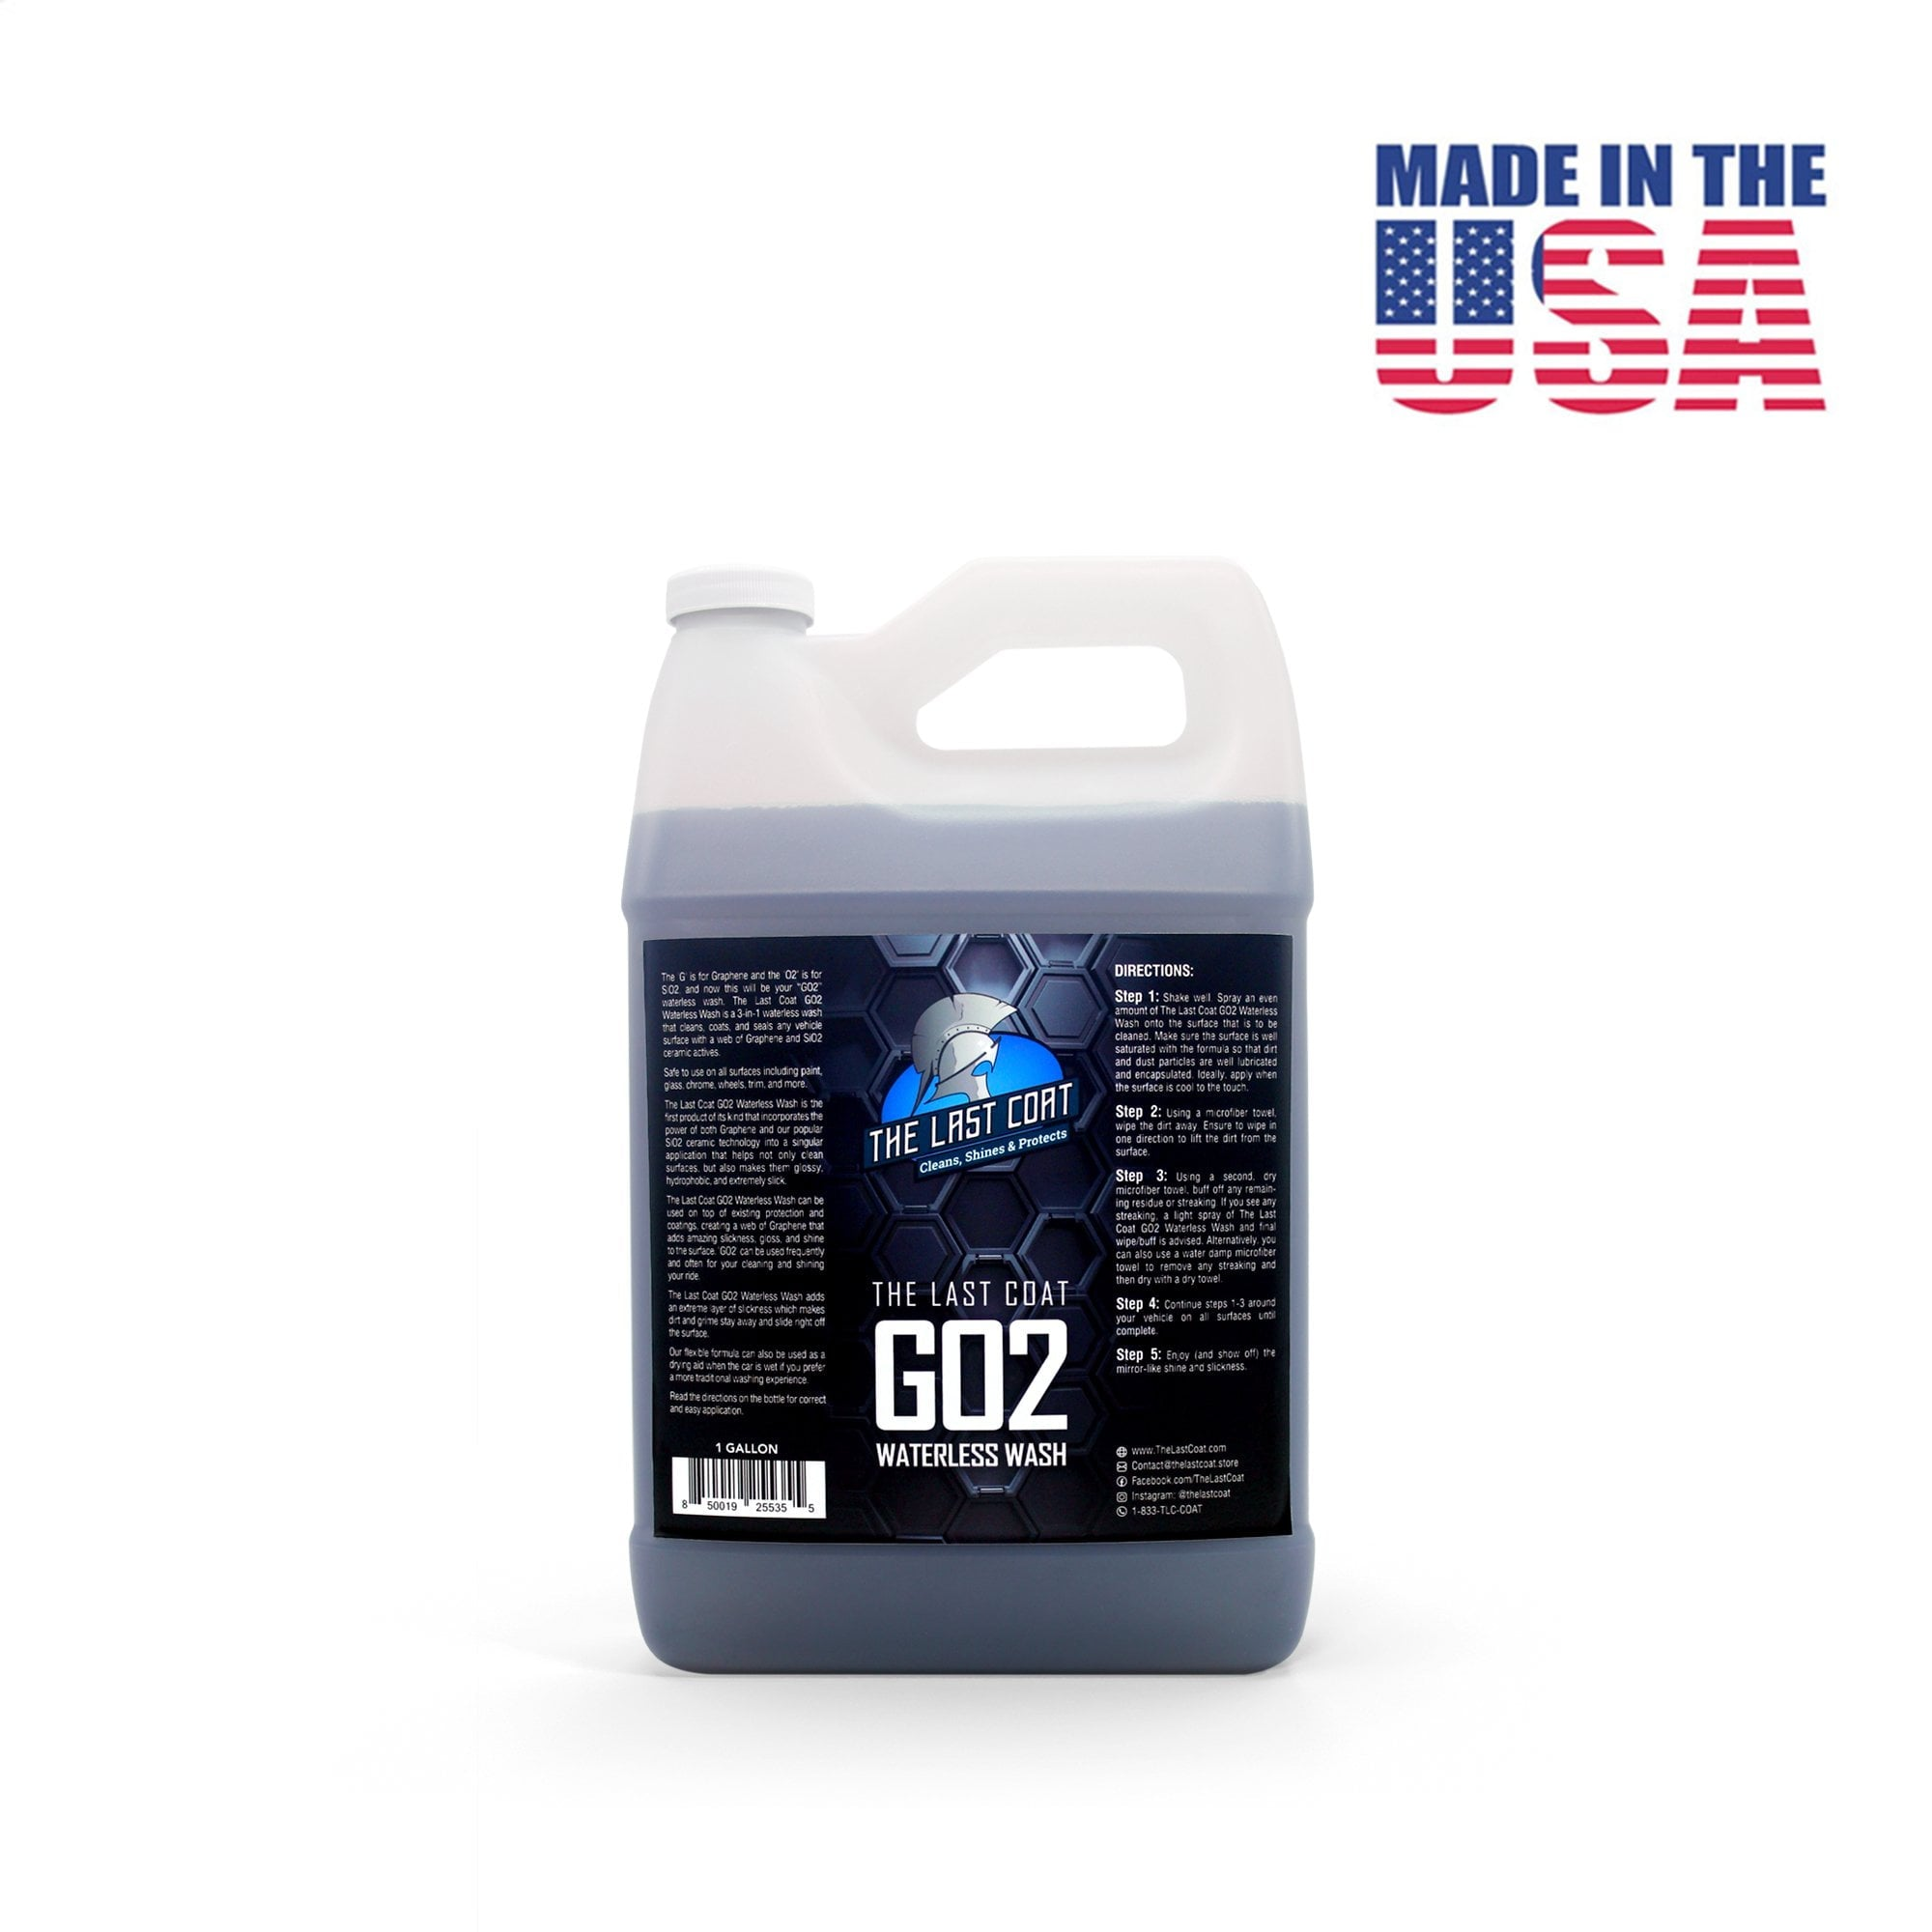 The Last Coat coupon: The Last Coat GO2 Waterless Wash - Graphene + SiO2 Based, 1 - Gallon Size **Best Savings**